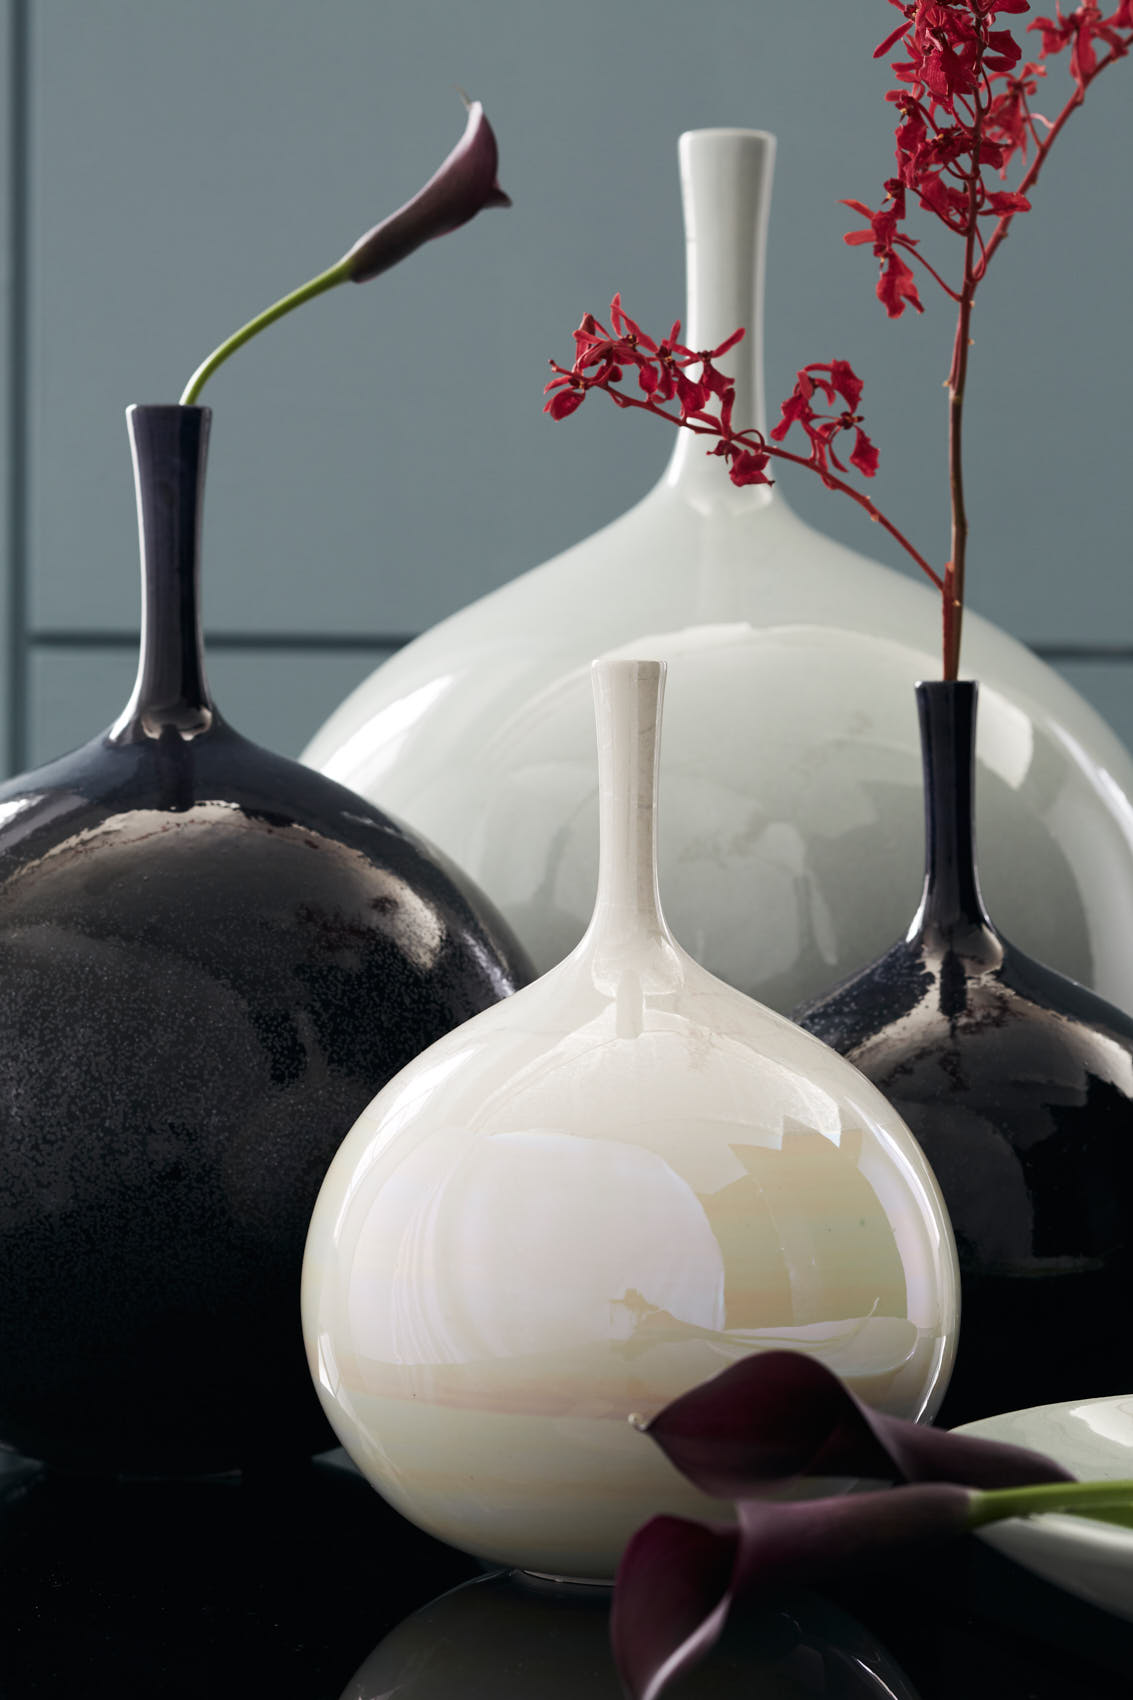 coll-editorial-balloon-luster-vase-hl16_4449-w